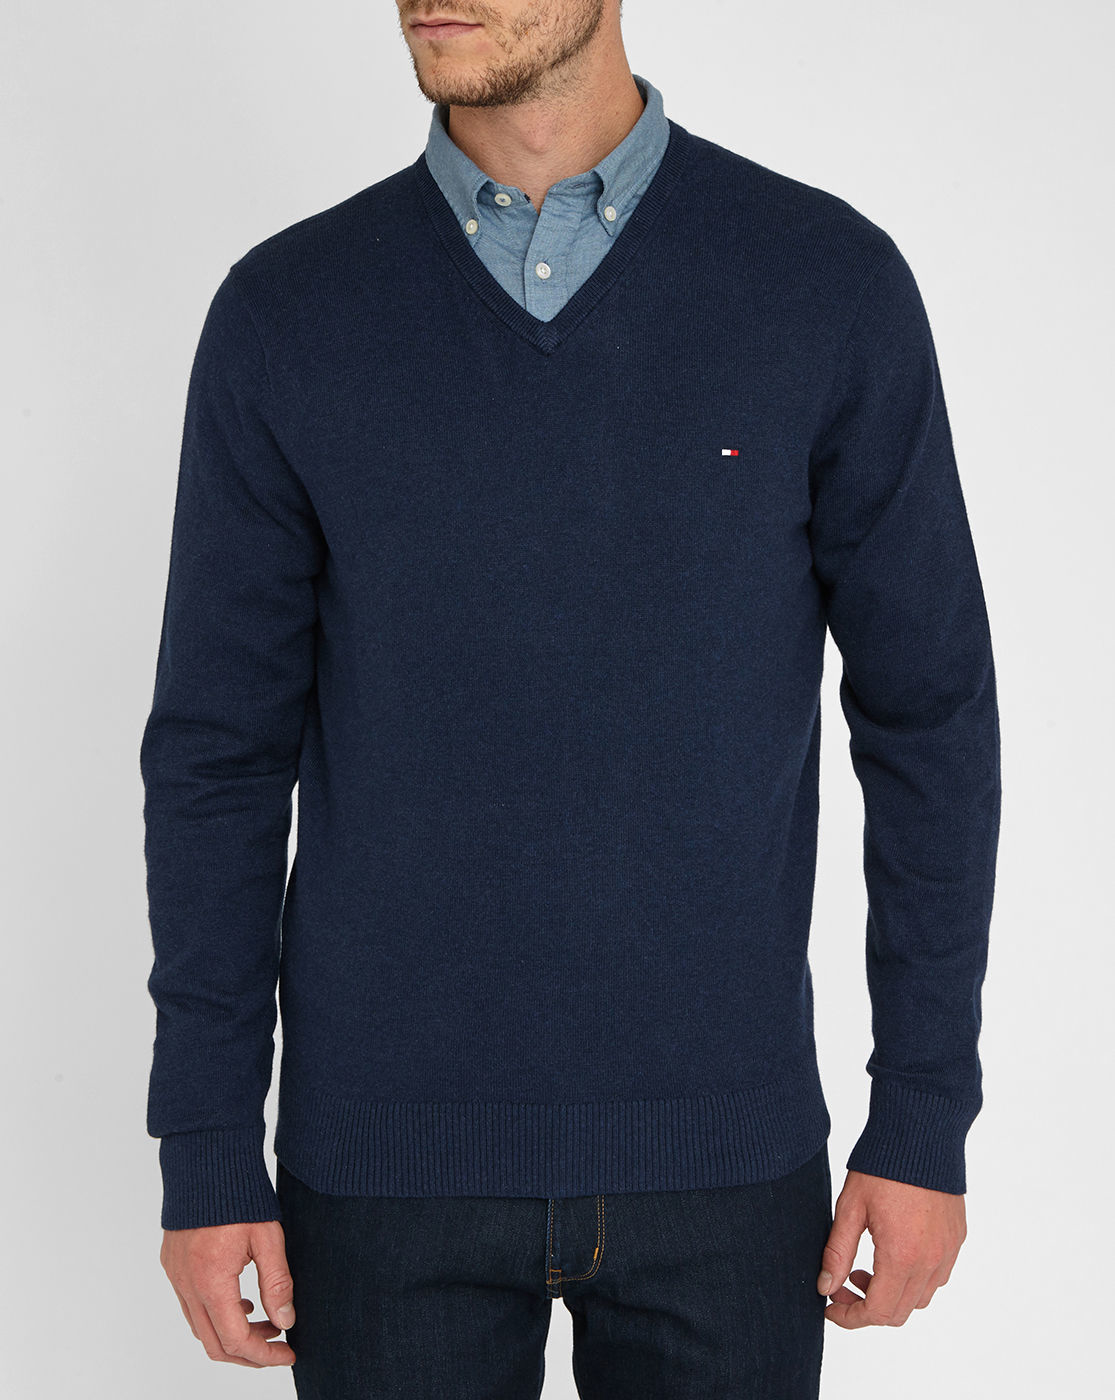 Tommy hilfiger Navy Cotton/wool/cashmere V-neck Sweater in Blue for ...